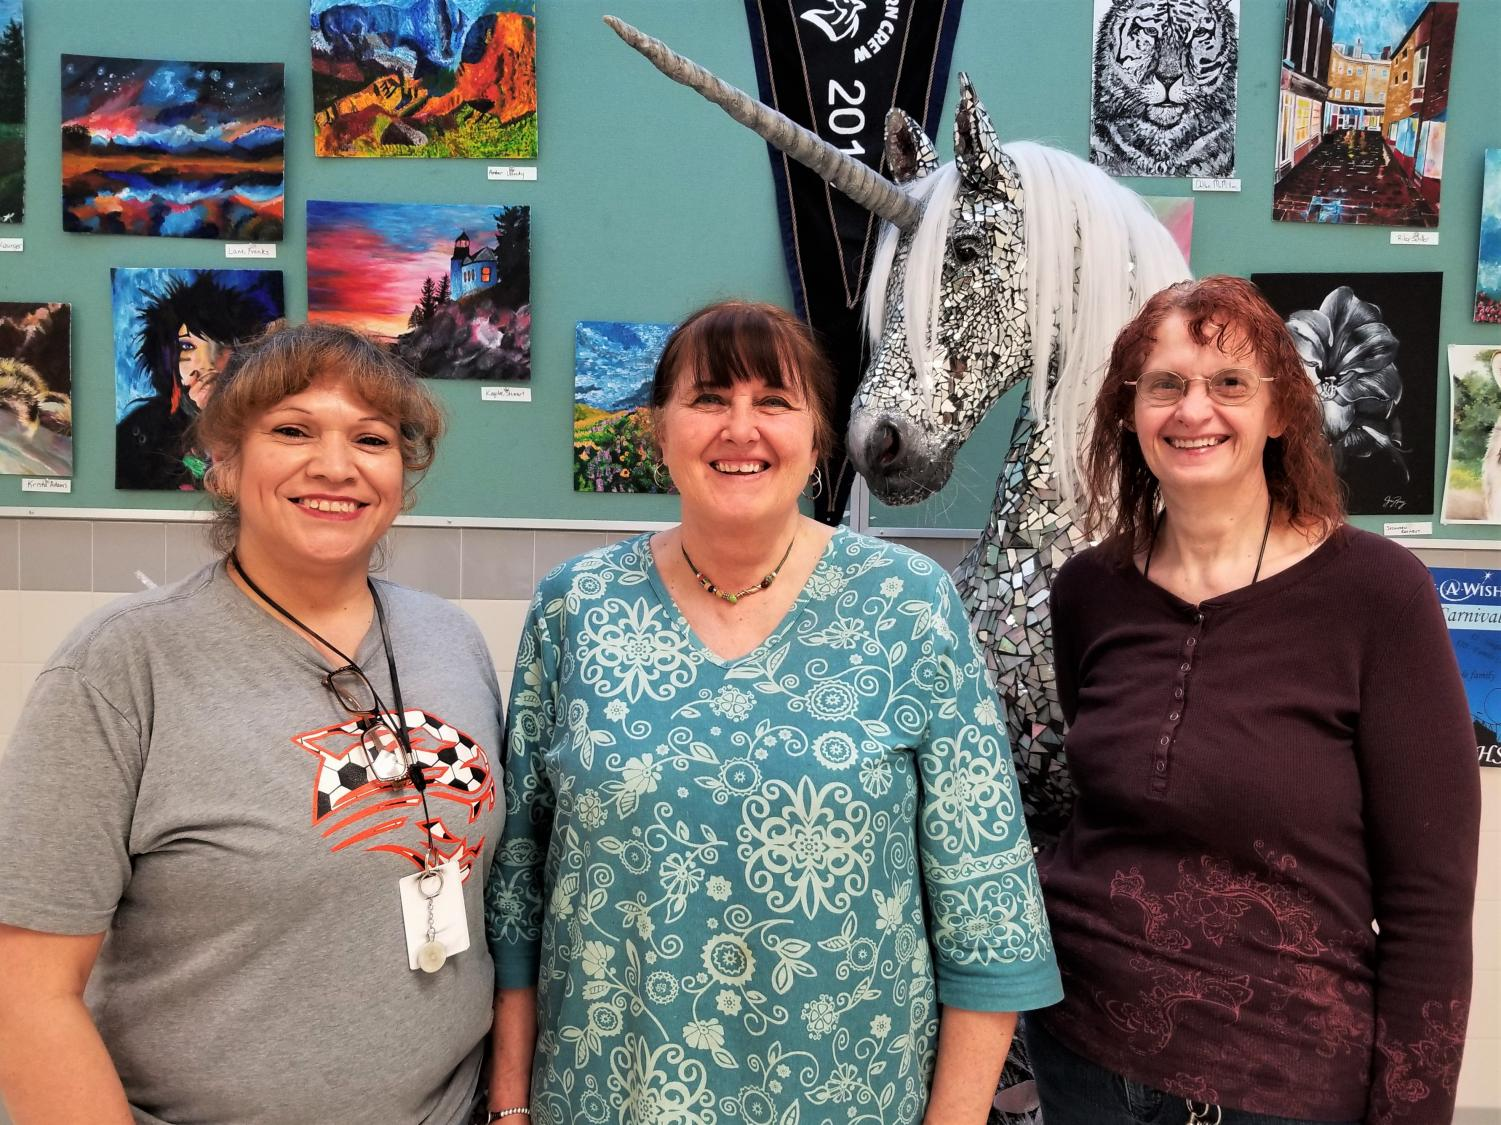 (From left) Delia Carbajal, Linda Tilley, and Jan Castro pose for a picture. They serve as Powell High School's evening custodial staff.